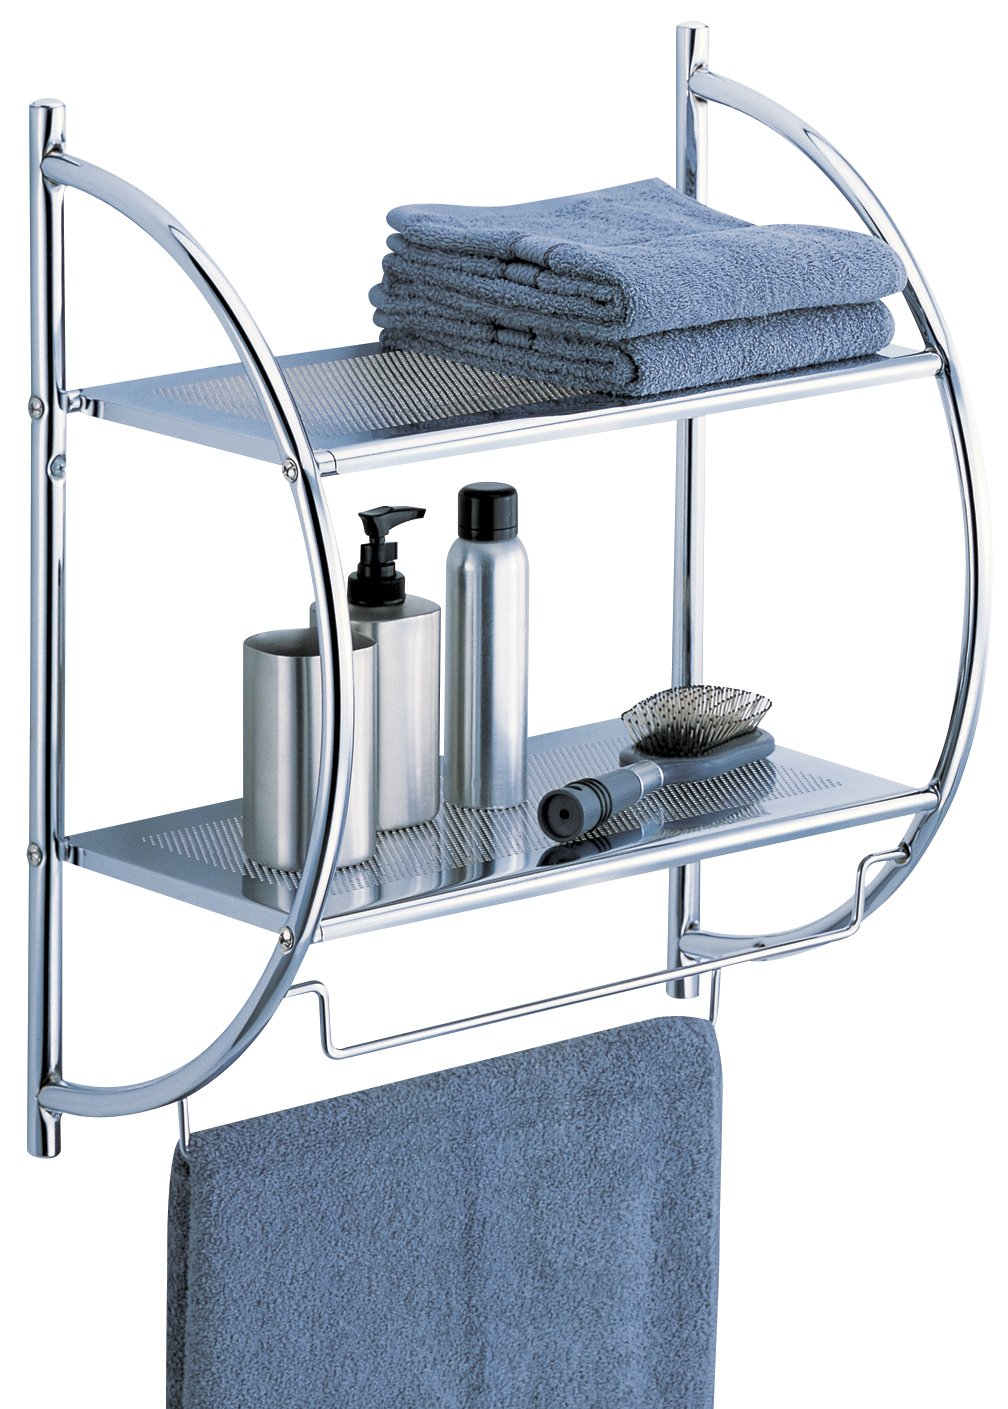 Amazoncom Organize It All Tier Shelf With Towel Bars Home - Bathroom wall shelf with towel bar for bathroom decor ideas